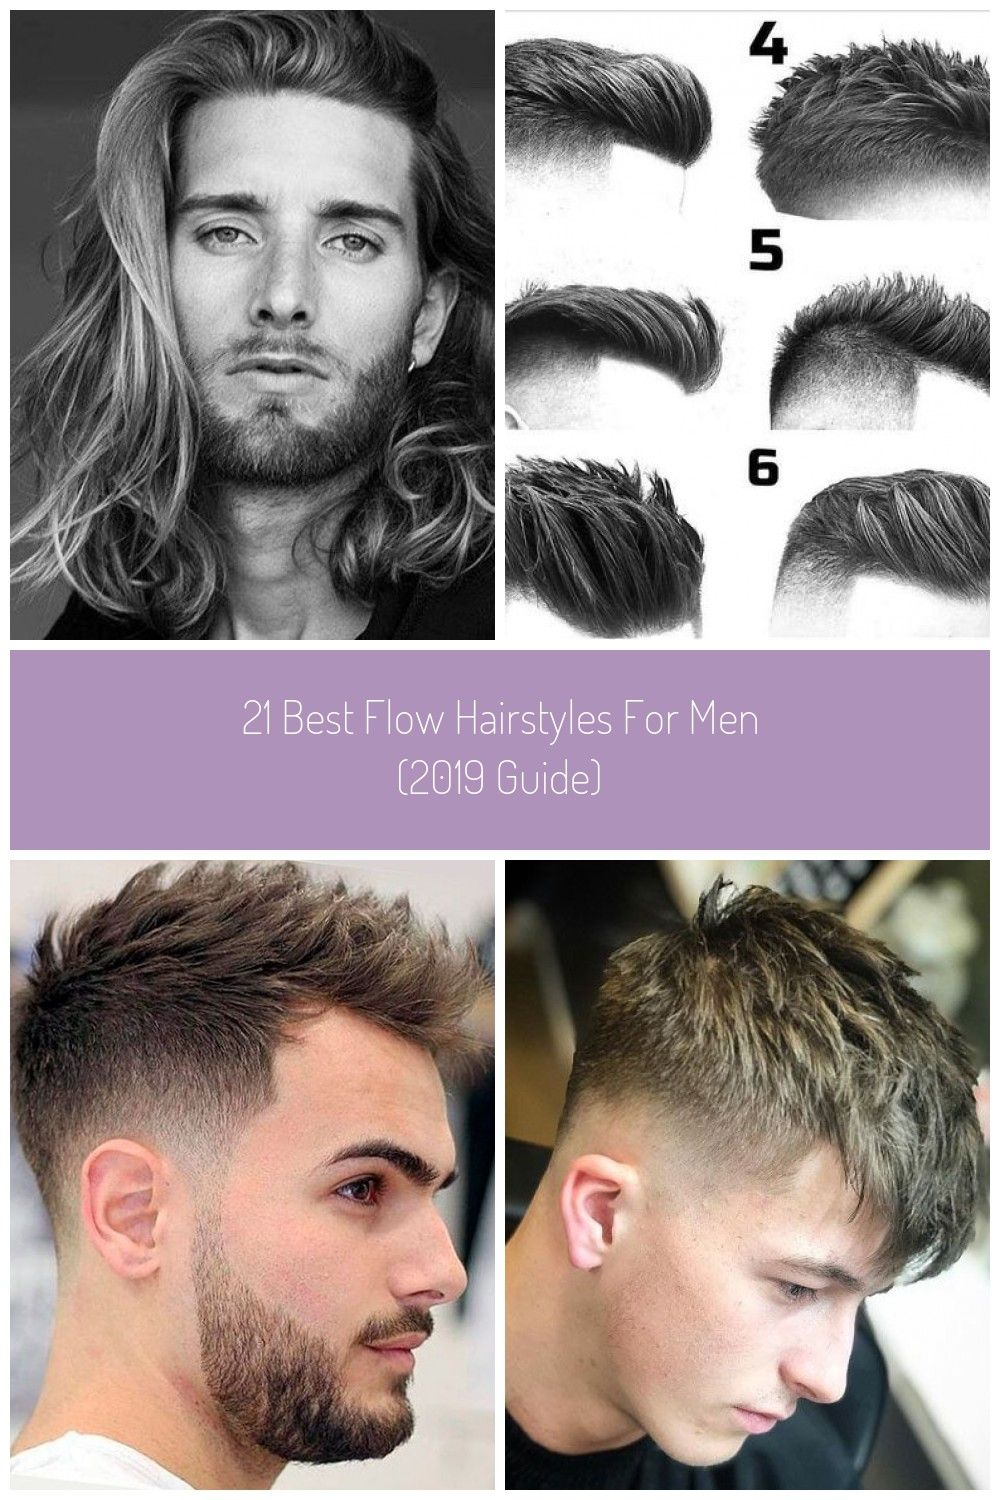 Long Flowing Hair For Men Best Flow Hairstyles For Men Short Medium And Long Men S Hair Flow Wing Mens Hairstyles Long Hair Styles Men Mens Haircuts Fade